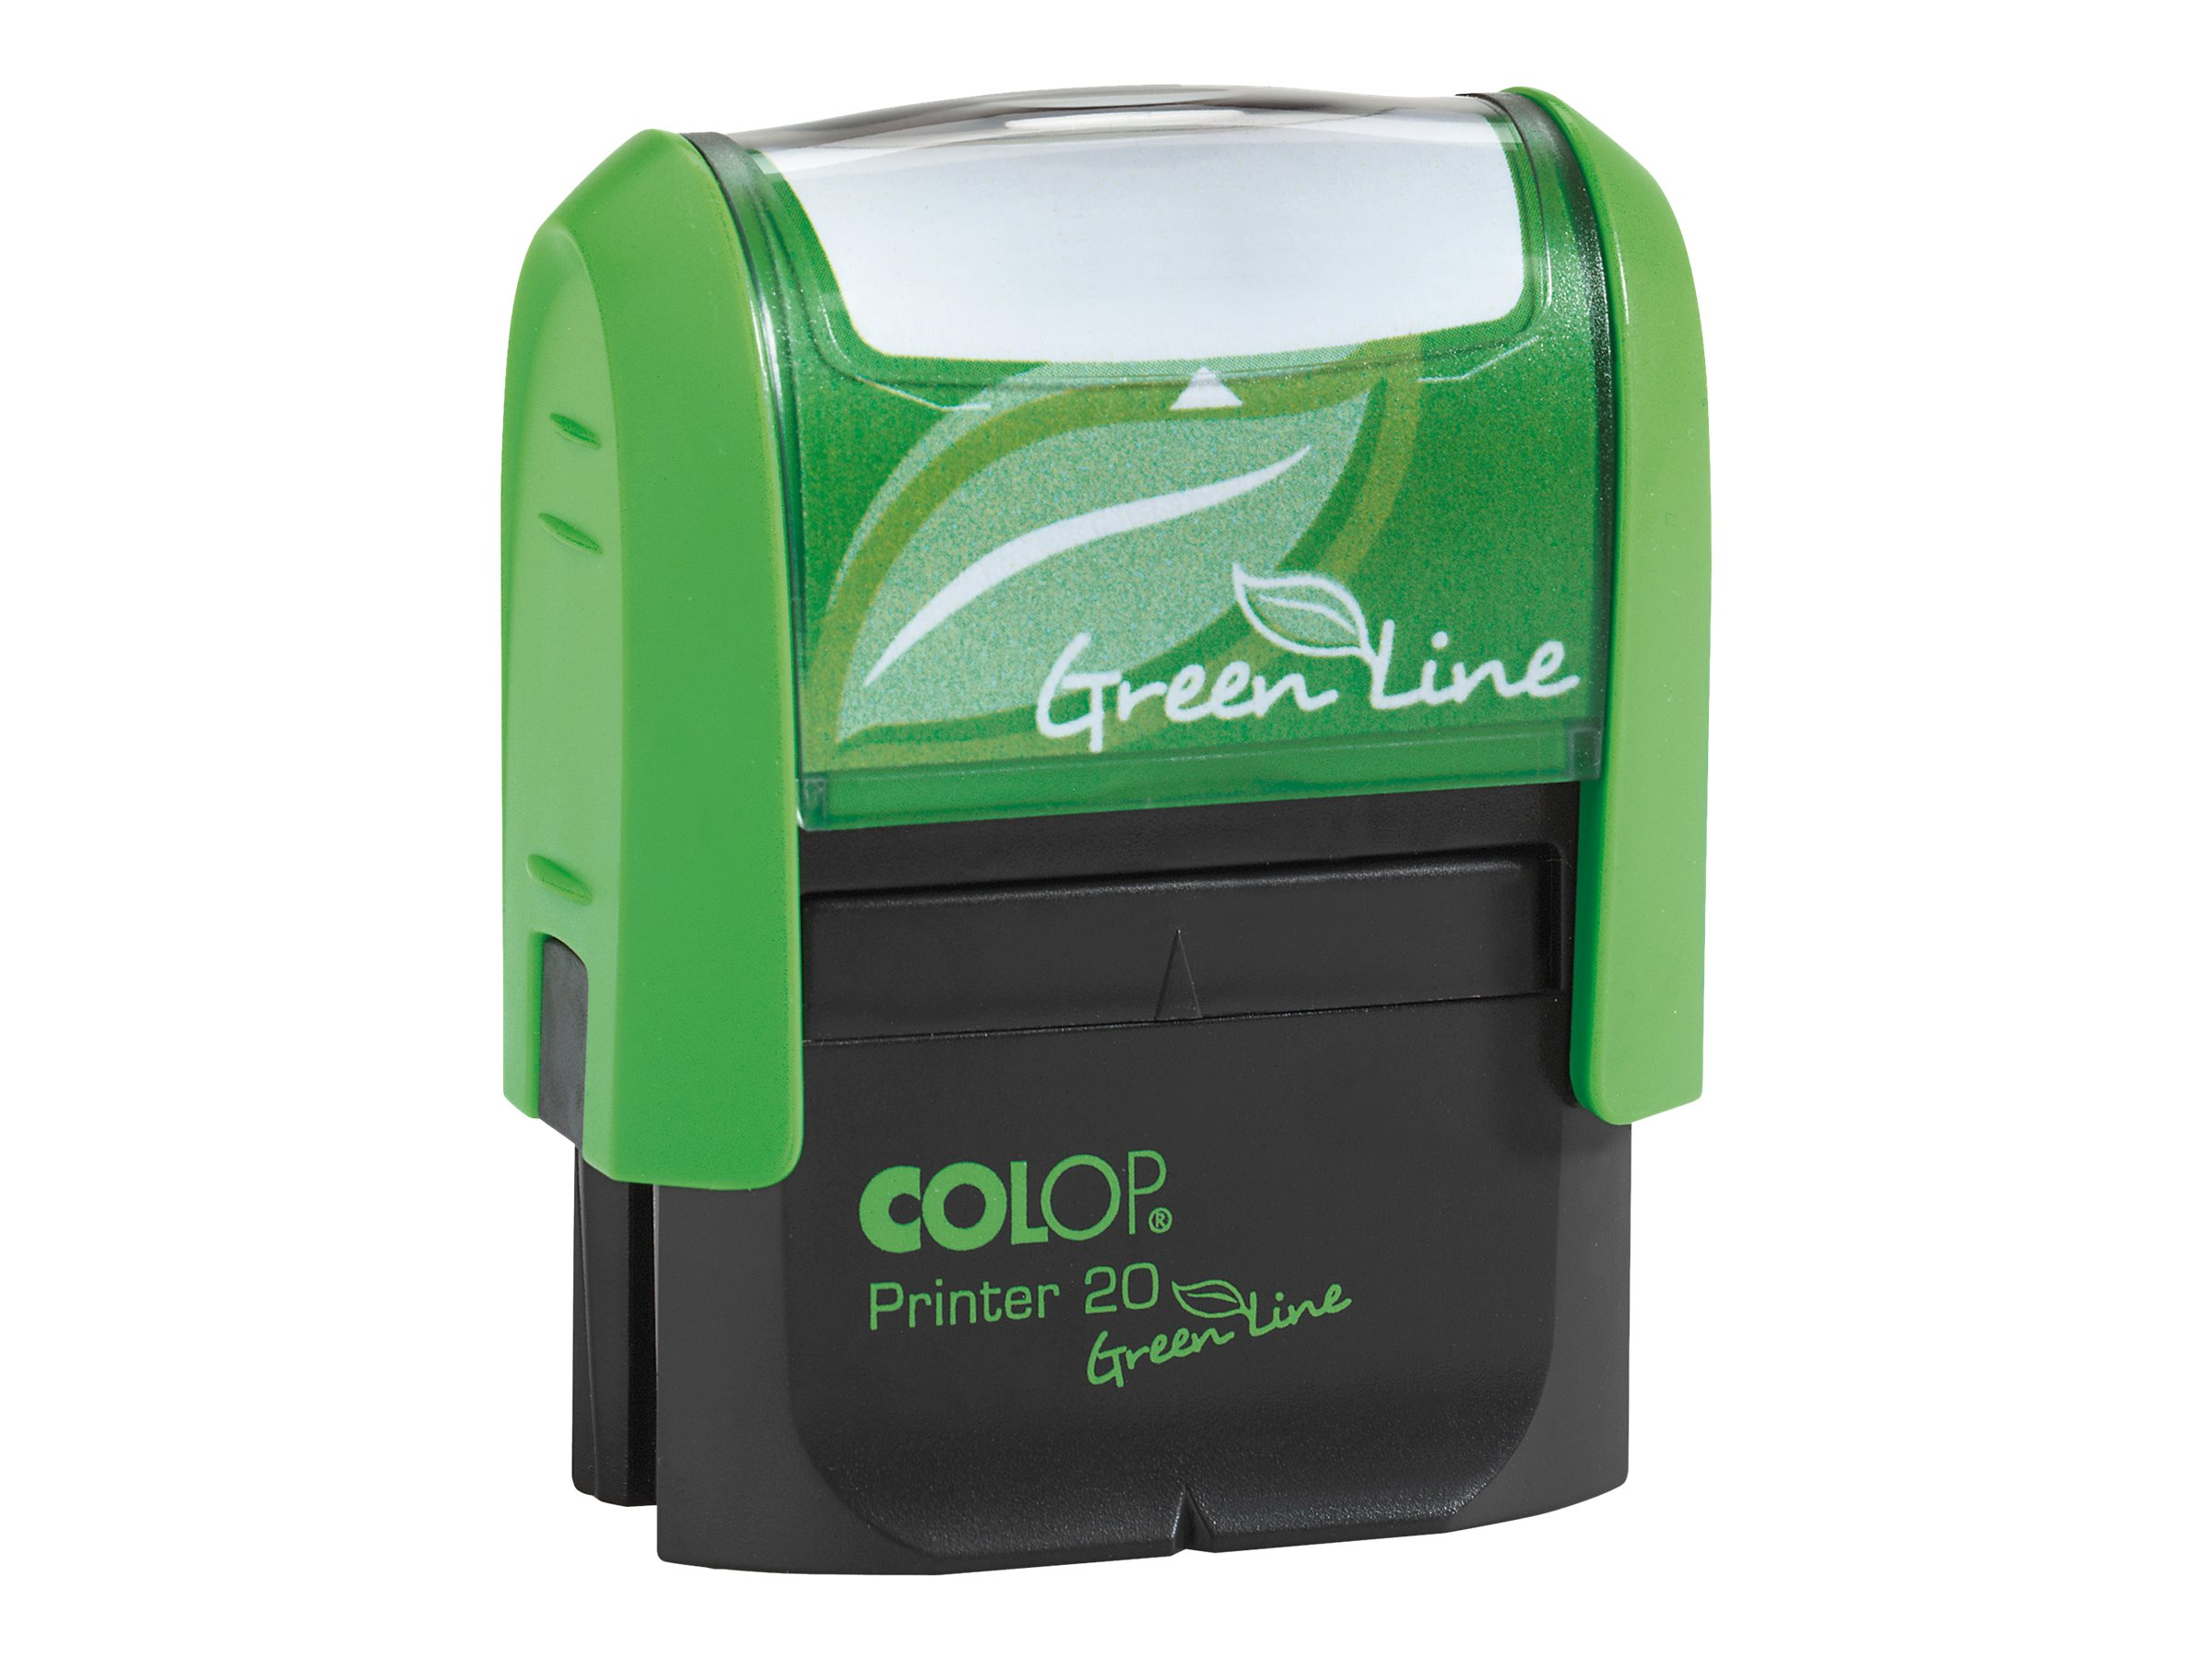 COLOP Printer 20 Green Line - tampon - DUPLICATA